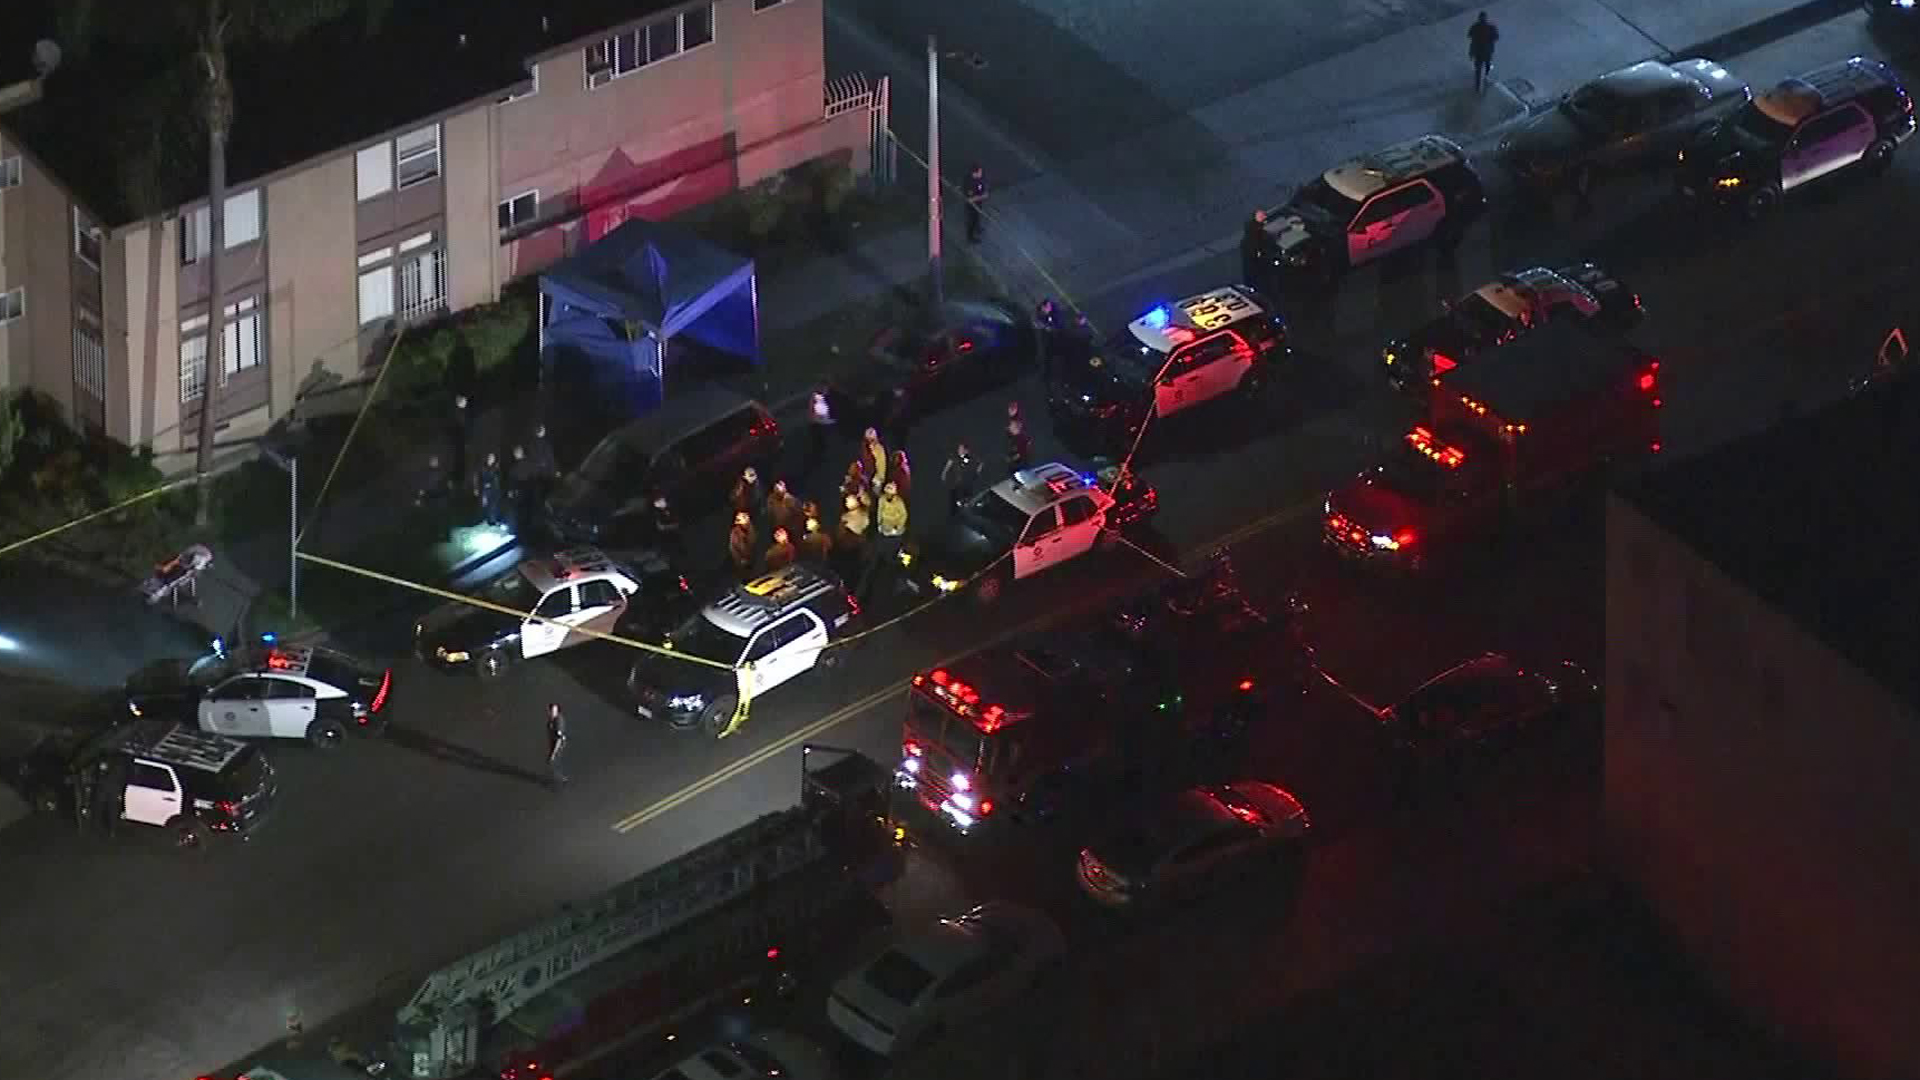 There was a large public safety response as authorities investigated the scene of a fatal shooting in Baldwin Hills on Oct. 23, 2018. (Credit: KTLA)